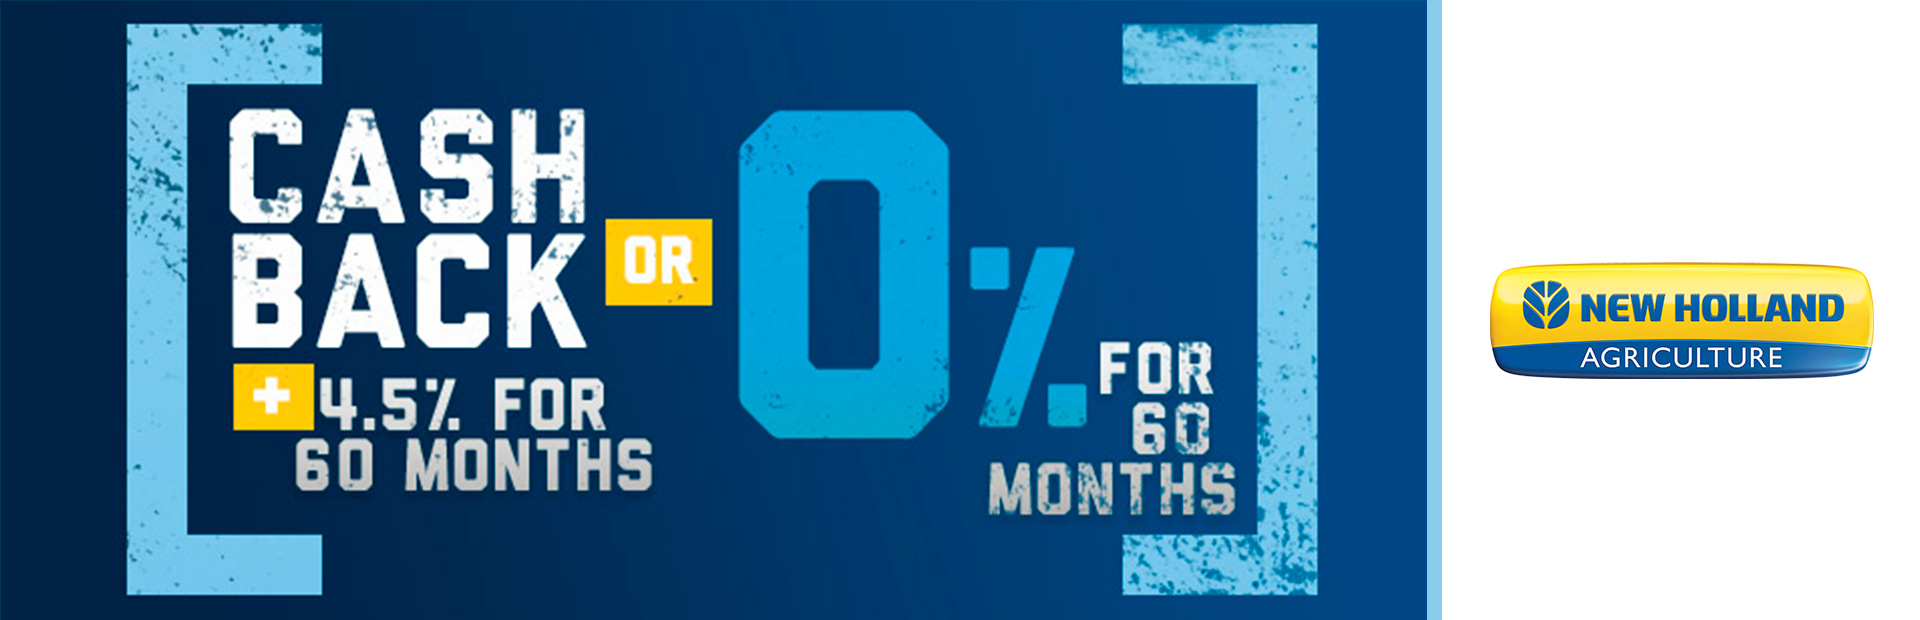 New Holland Agriculture: Cash Back PLUS 4.5% for 60 Months OR 0% for 60 Mon